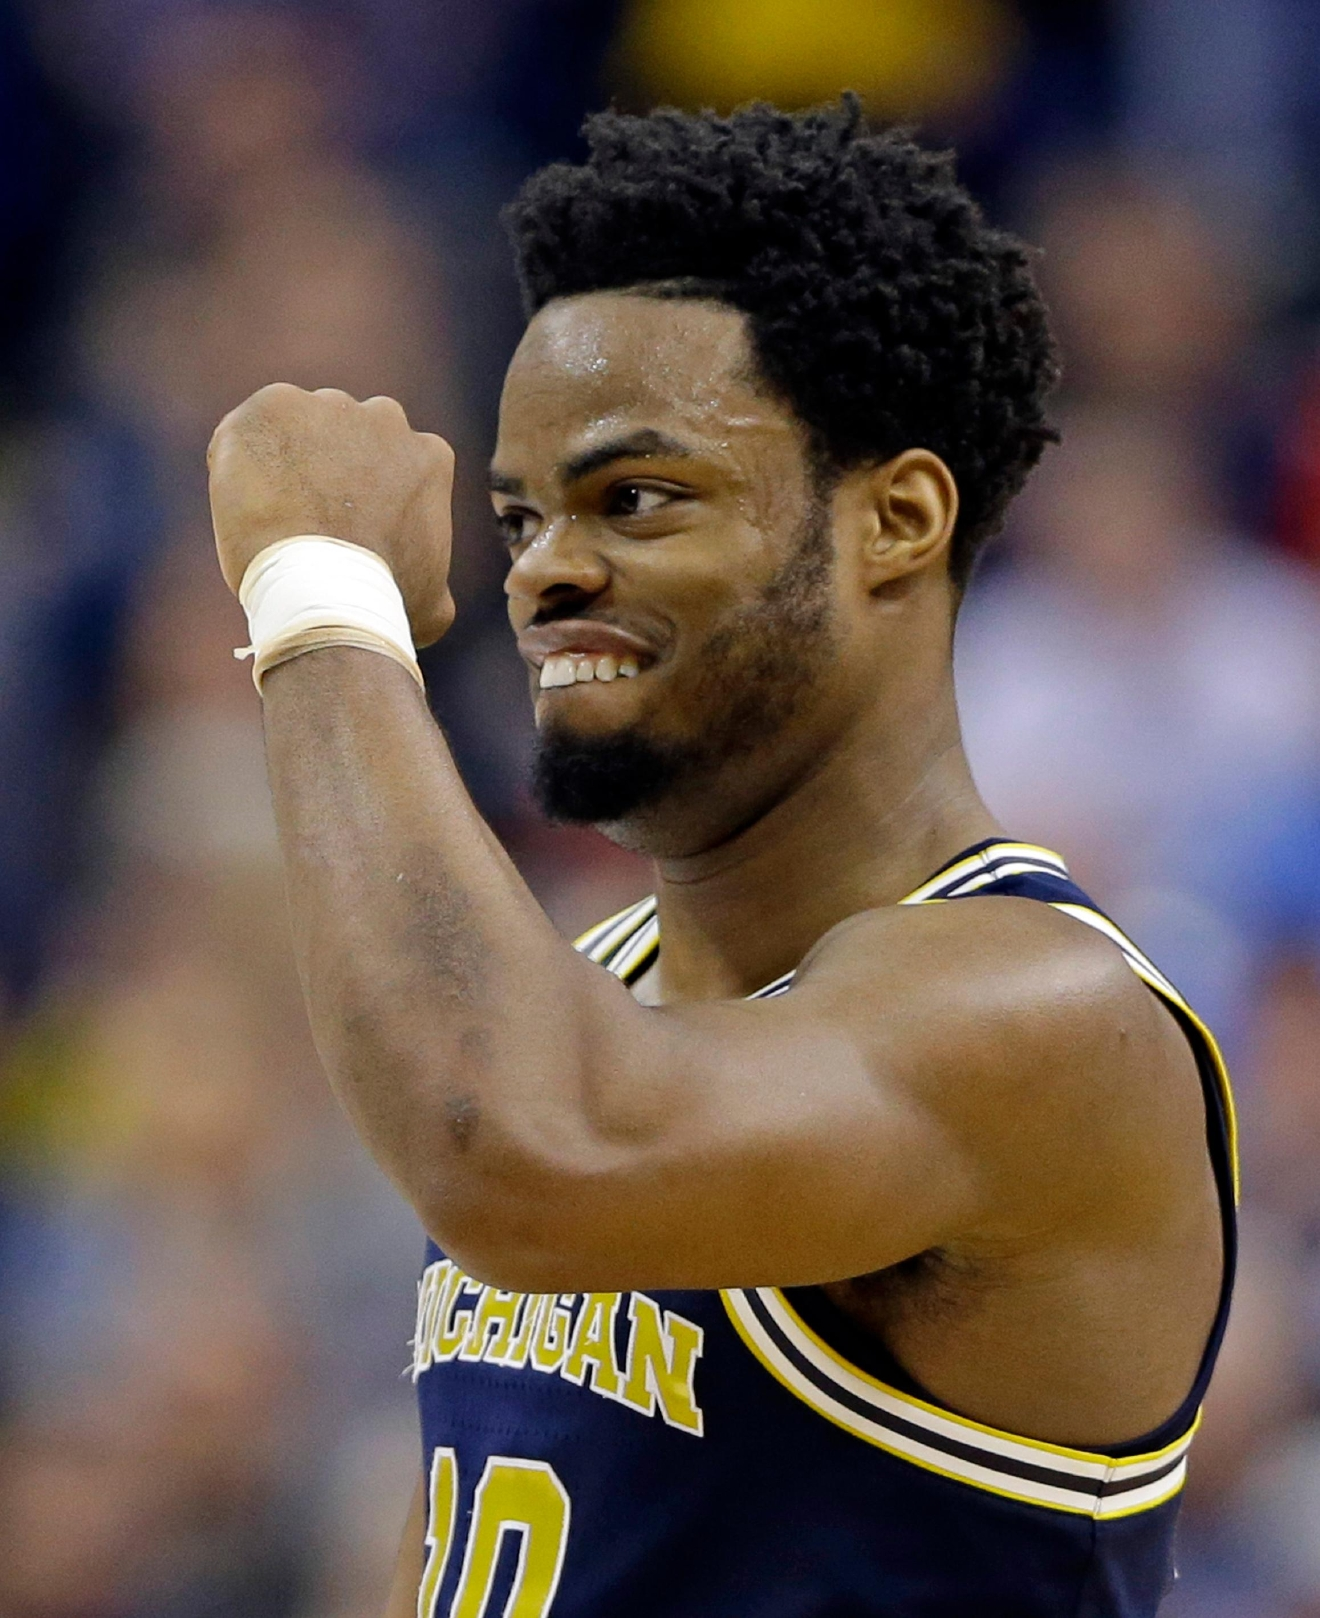 Michigan guard Derrick Walton Jr. (10) celebrates a 73-69 win over Louisville in a second-round game in the men?s NCAA college basketball tournament in Indianapolis, Sunday, March 19, 2017. (AP Photo/Michael Conroy)